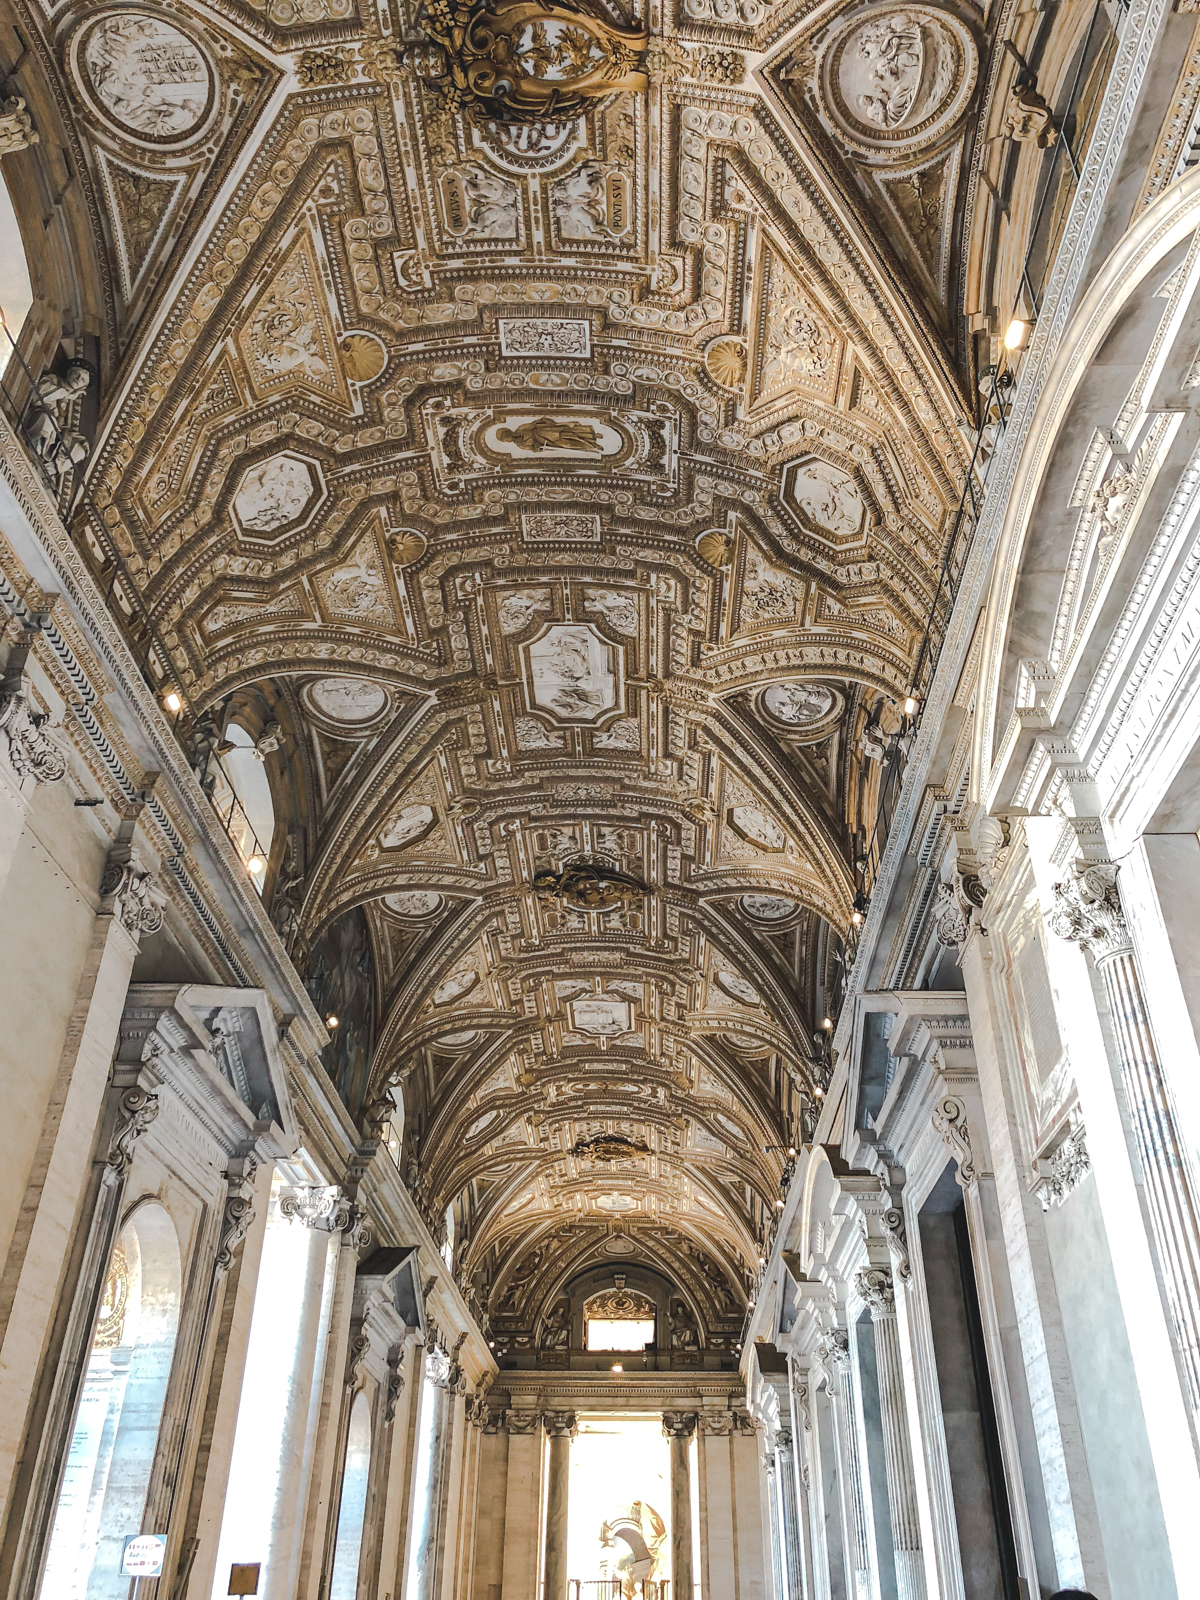 views of the artwork on the ceiling in the Vatican in Rome